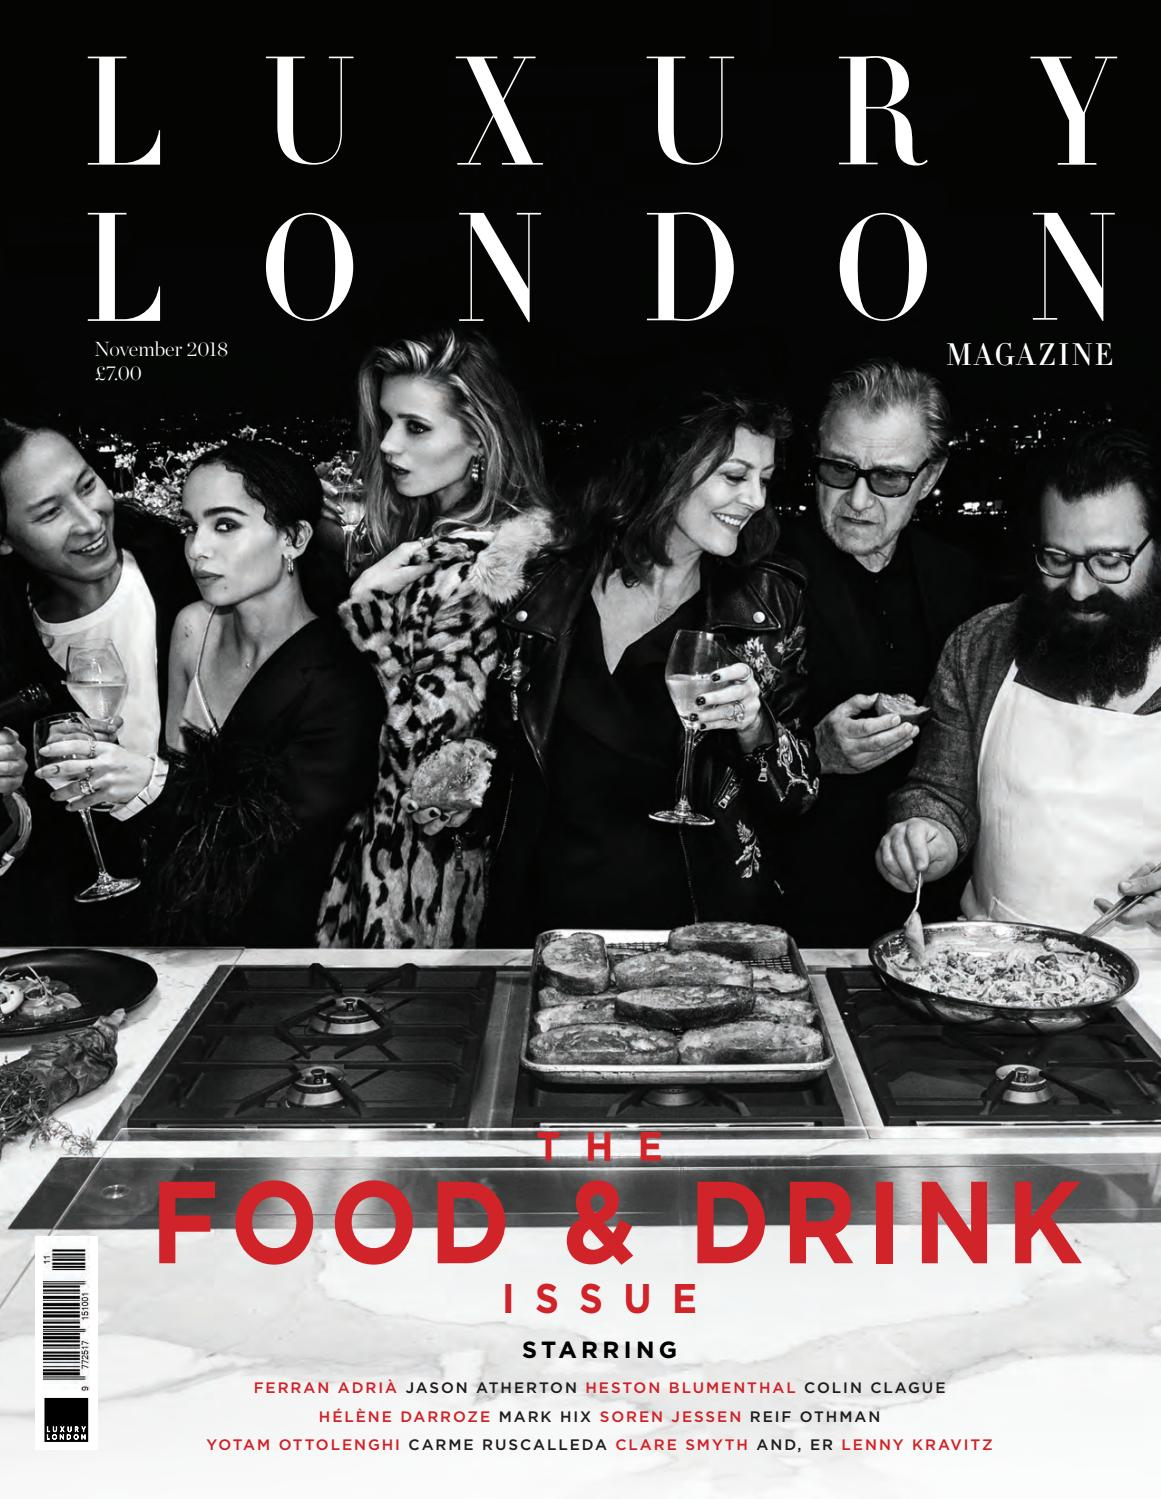 cf9581a43d06 Luxury London Magazine November 2018 by Luxury London Media - issuu